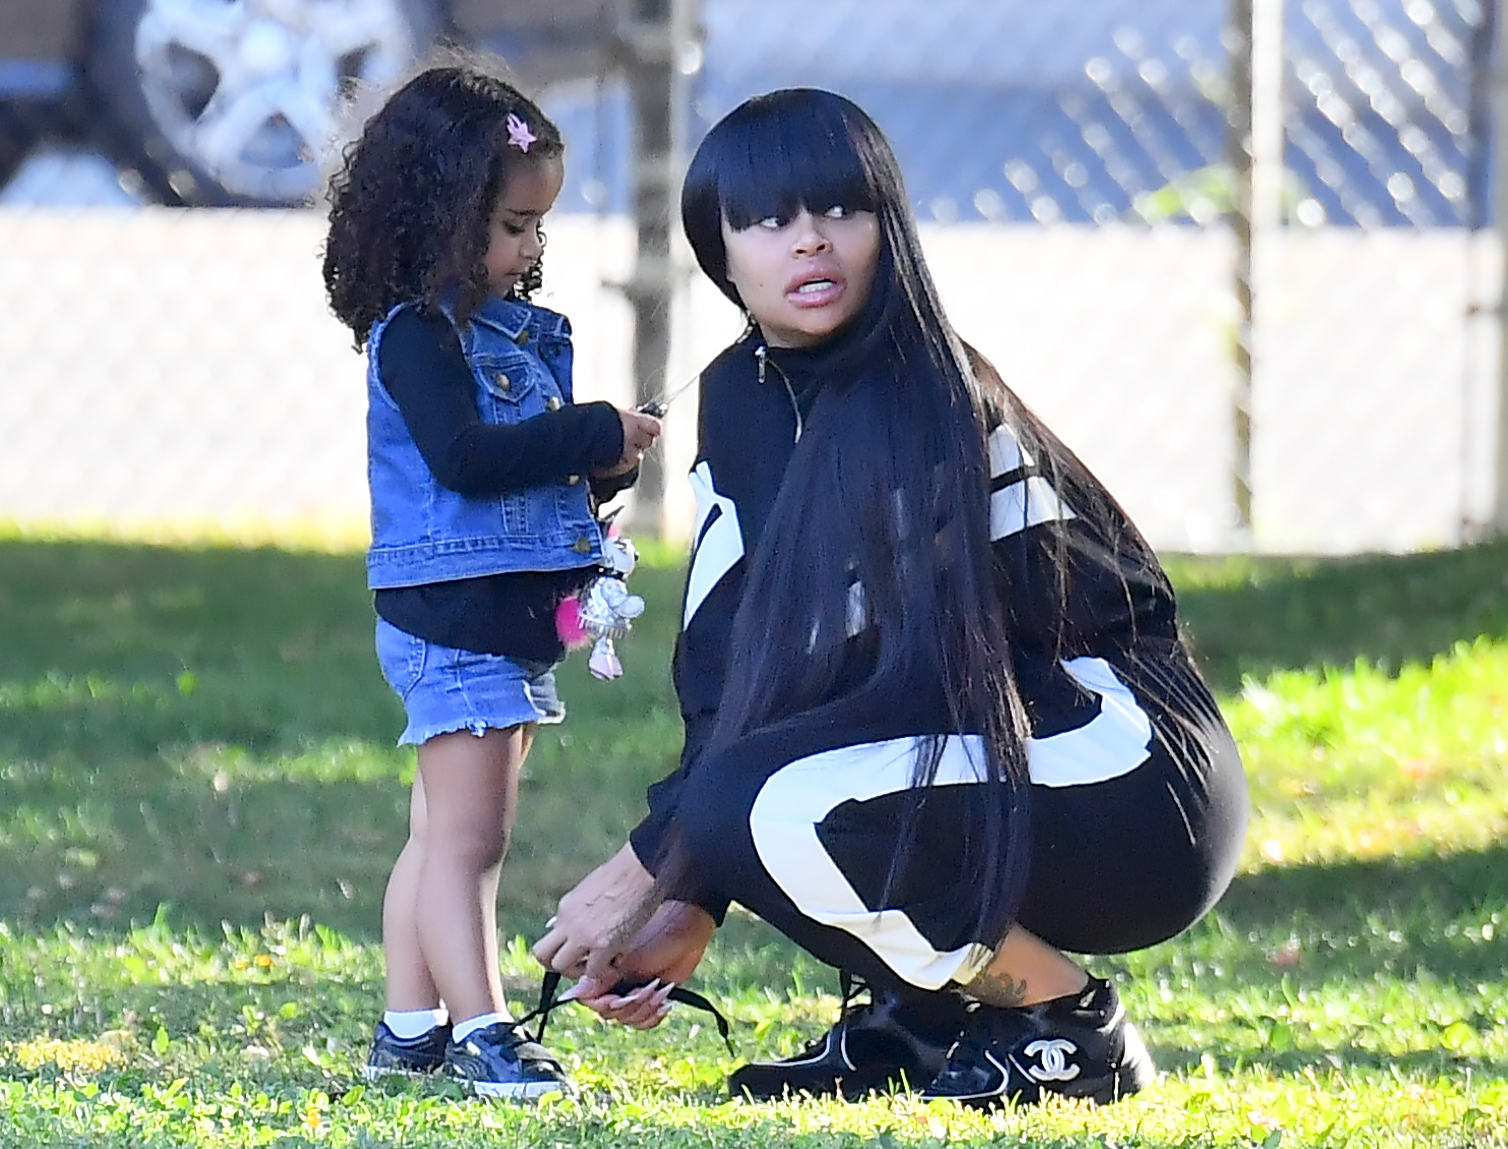 Rob Kardashian Daughter Dream Posing with Mom Blac Chyna - Fans Are Divided